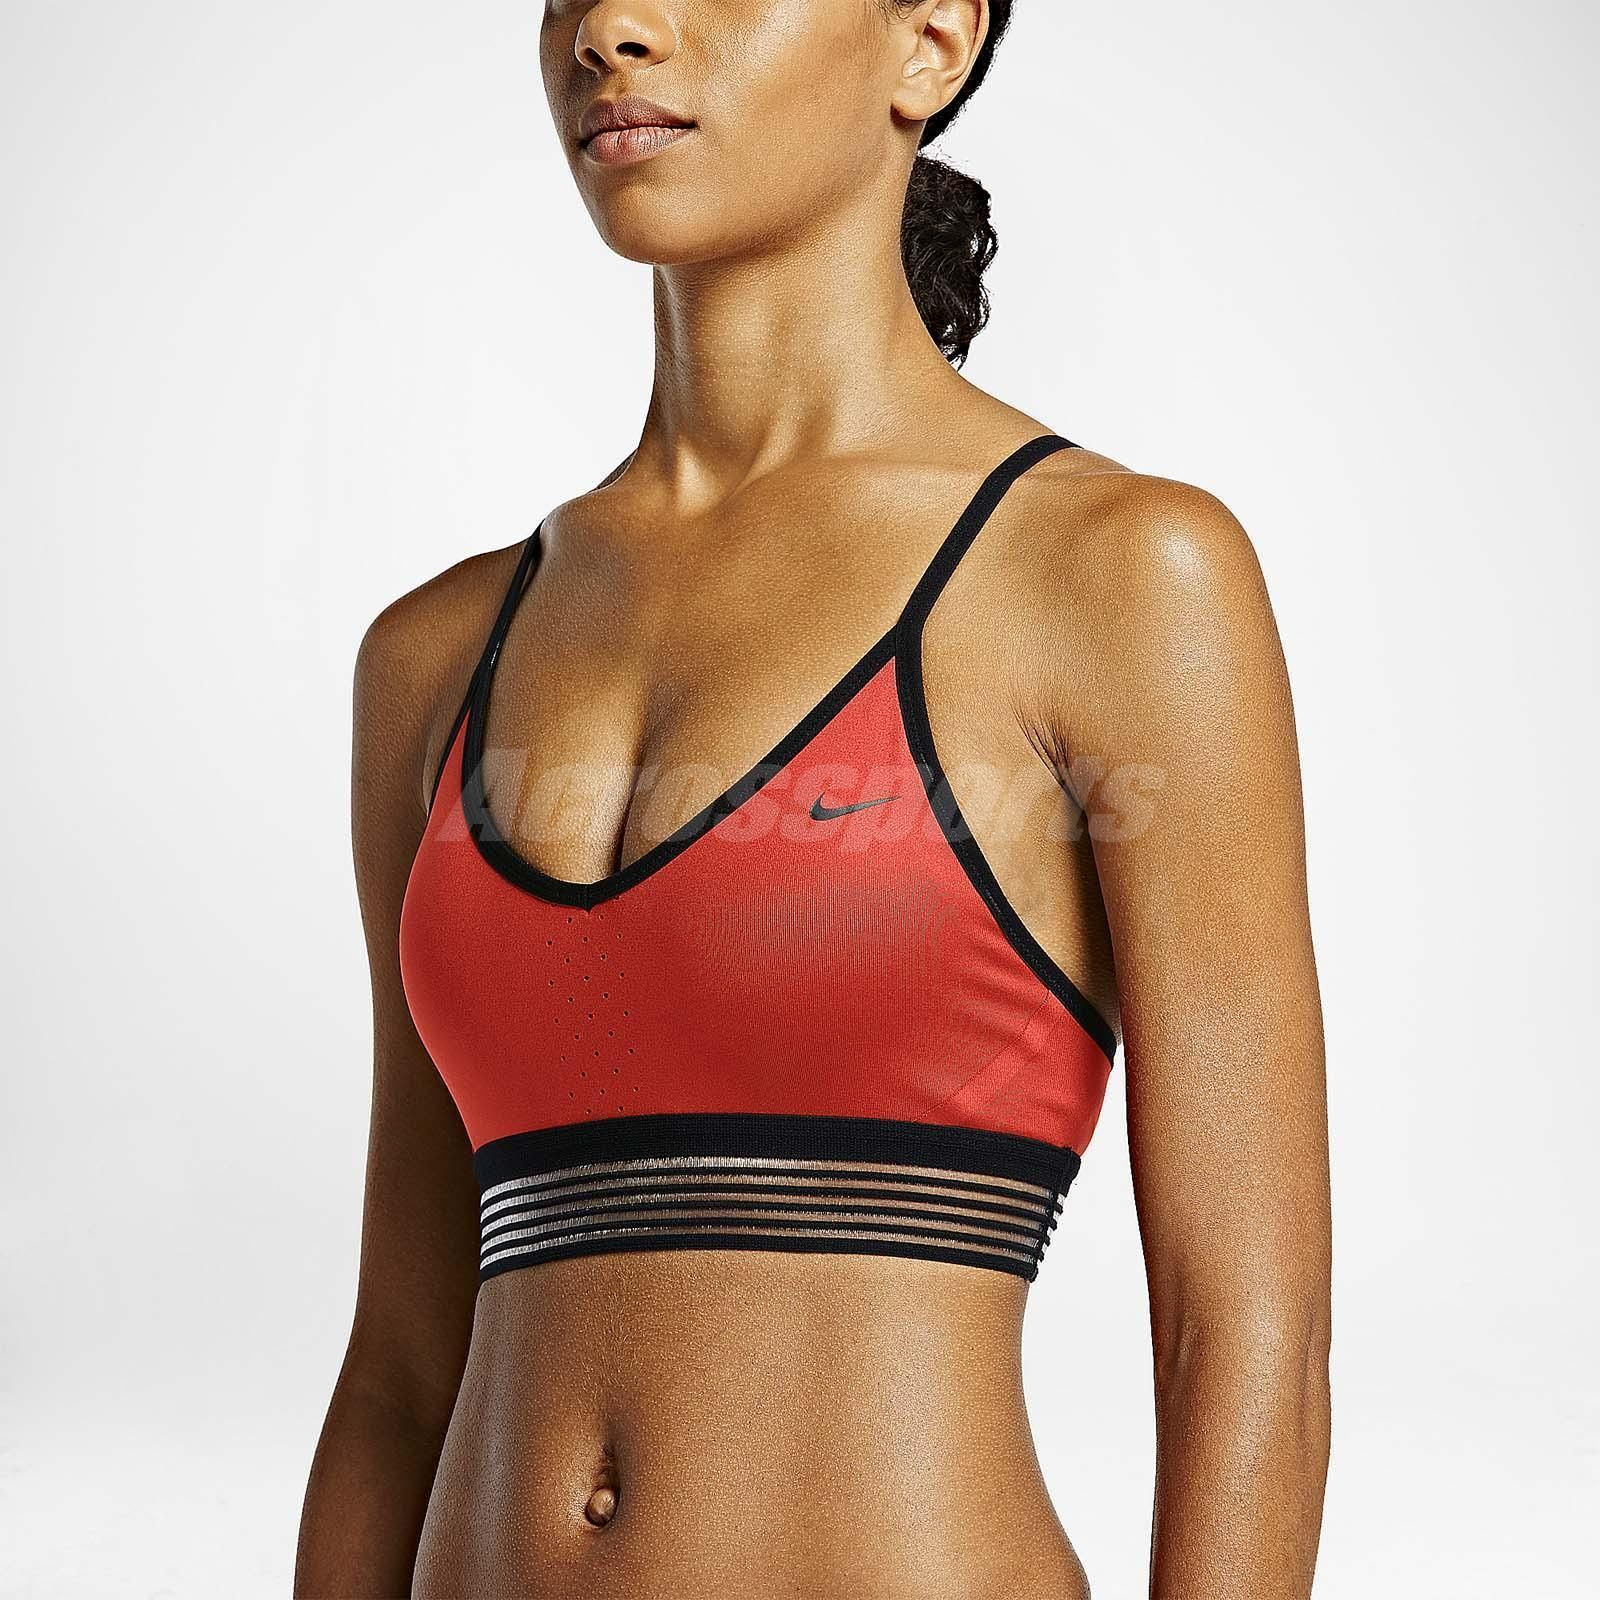 d58a3471f3 Nike Pro Indy Cool Light Support Red Yoga Fitness Workout Bra Top 805190-696